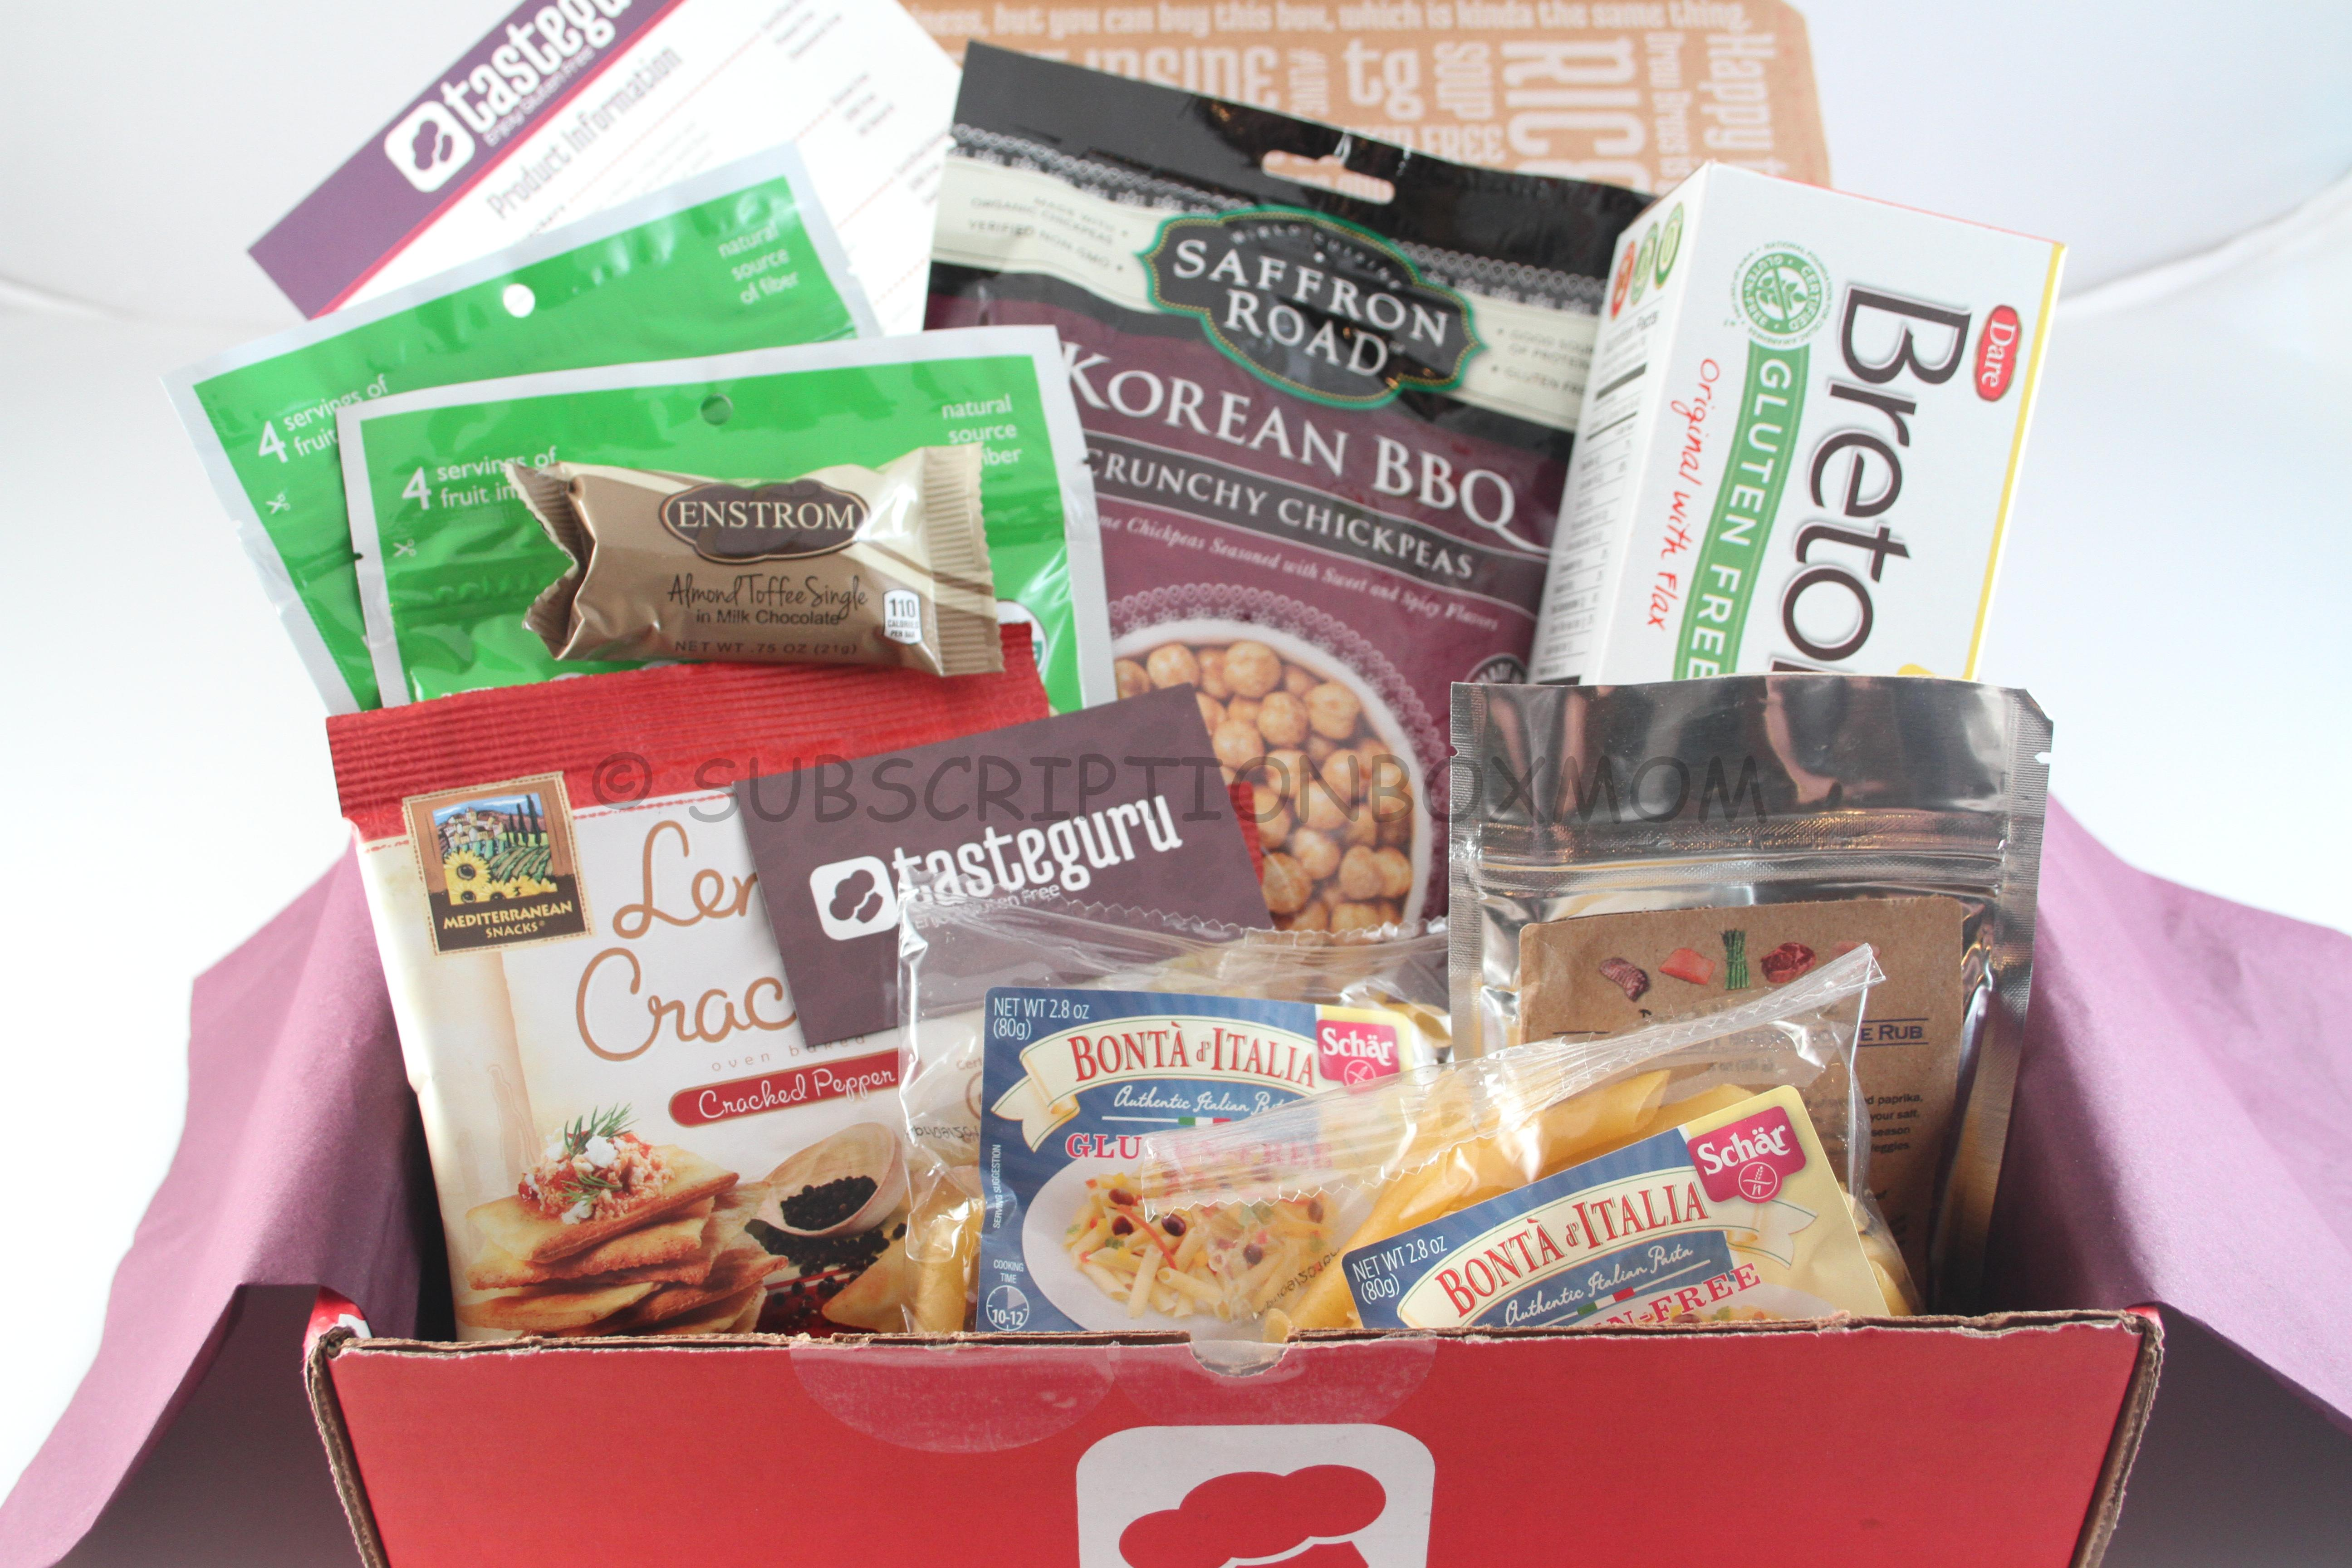 Taste guru october 2014 review bonus gifts gluten free box guru magnet and a enstrom almond toffee milk chocolate bar thrown as bonus items i dont love toffee so i will give this to my mom who will lvoe it negle Choice Image